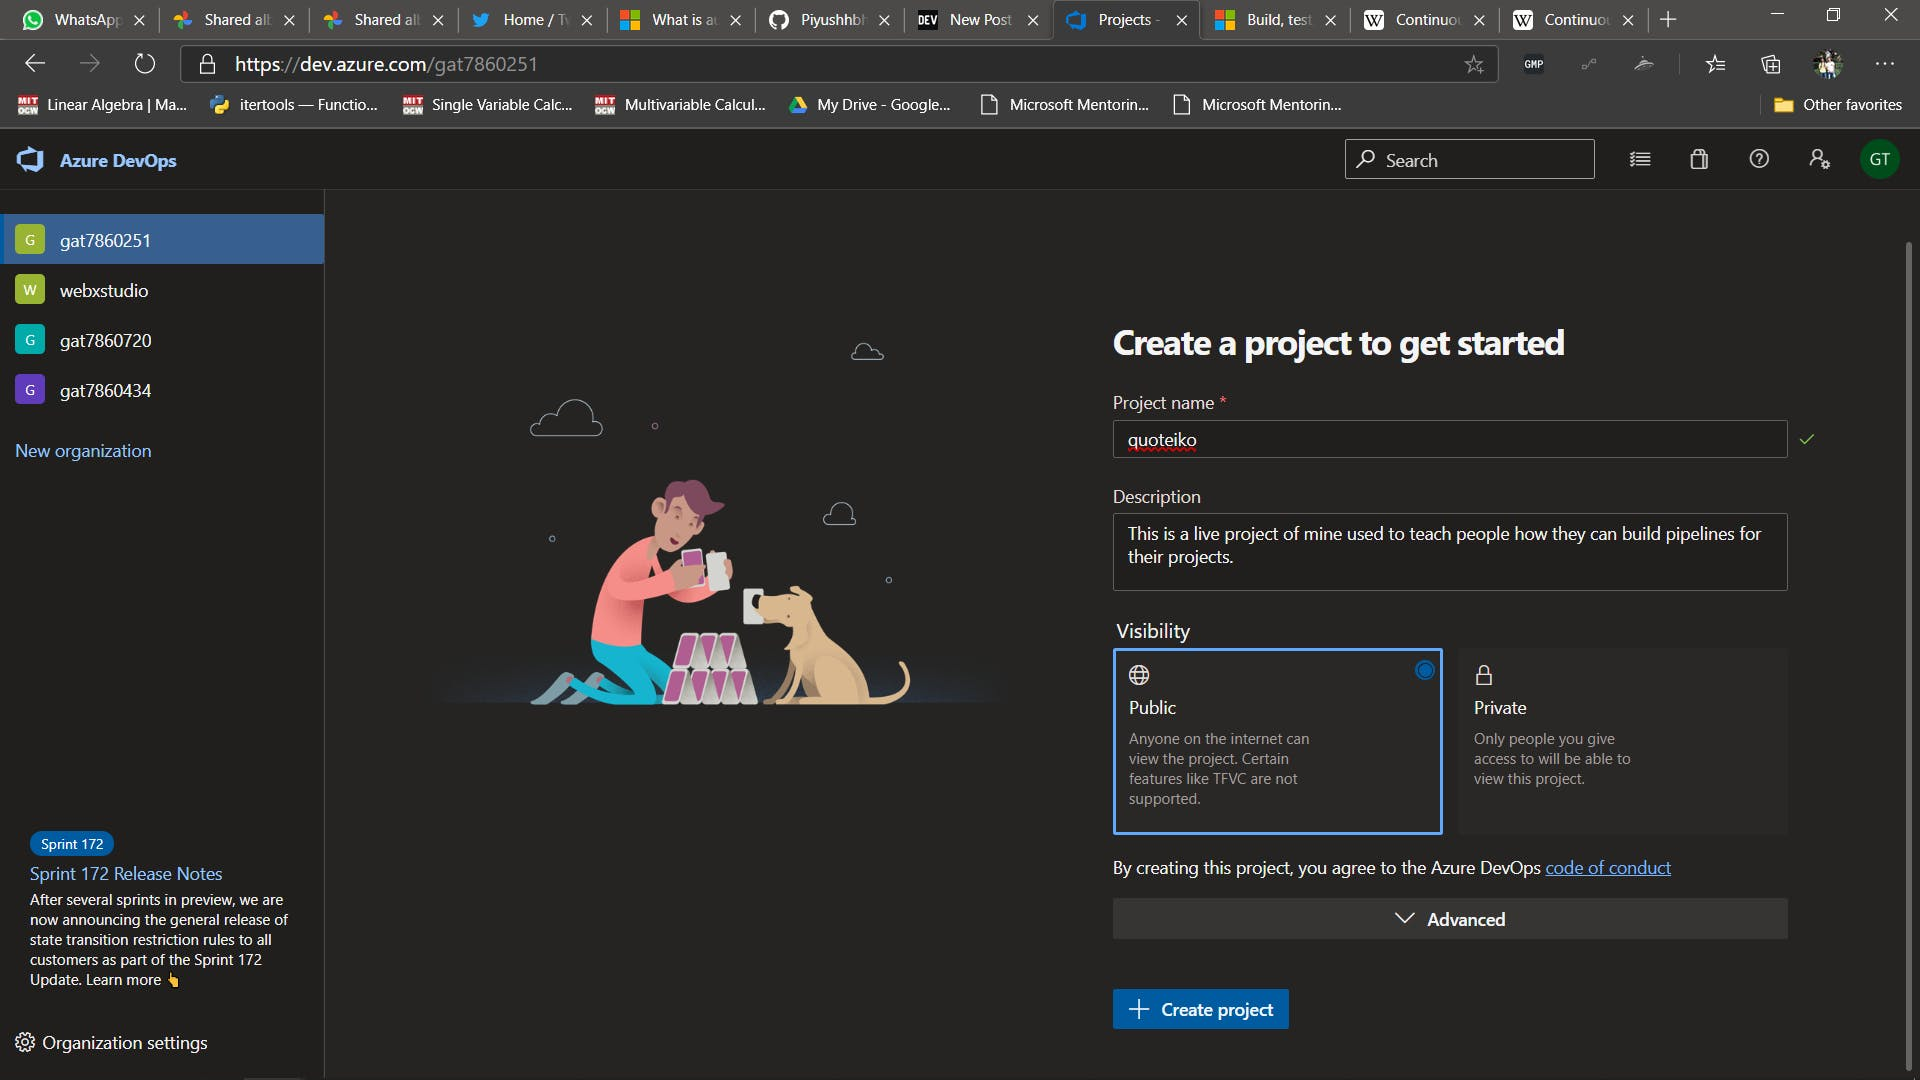 Project Creation Screen